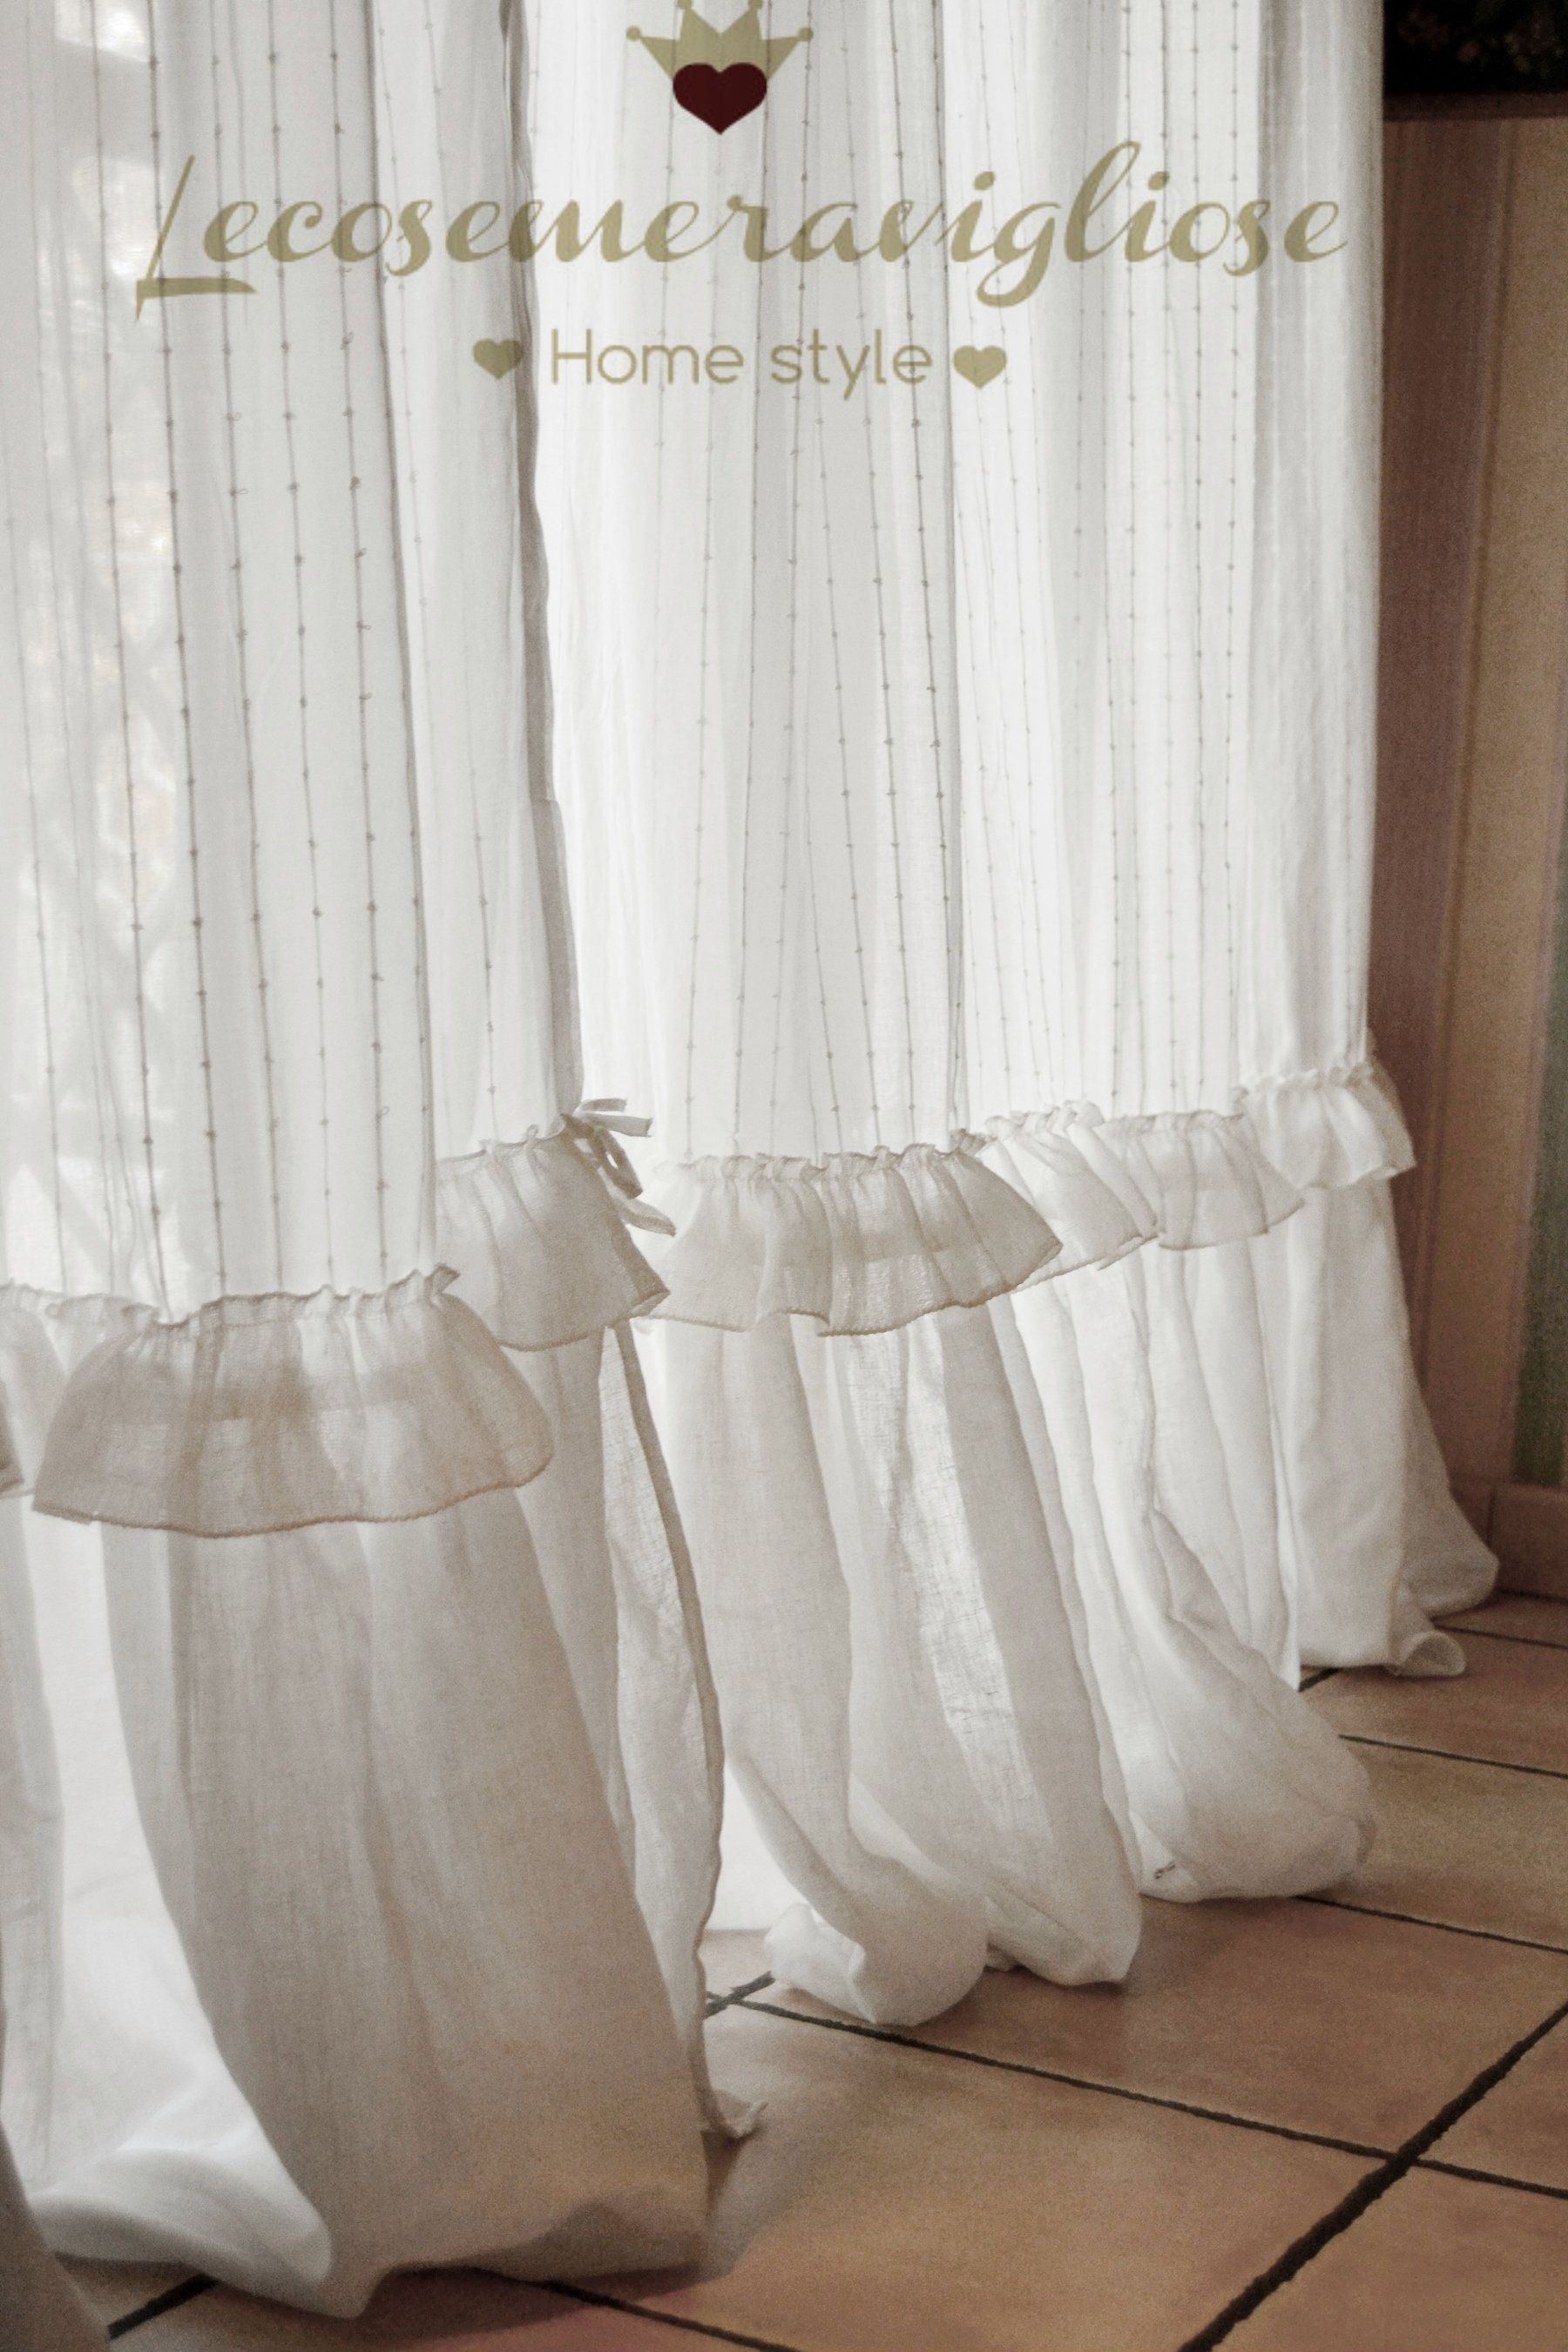 Tende shabby chic in lino bianco perfect idee cucito - Rideaux shabby chic ...